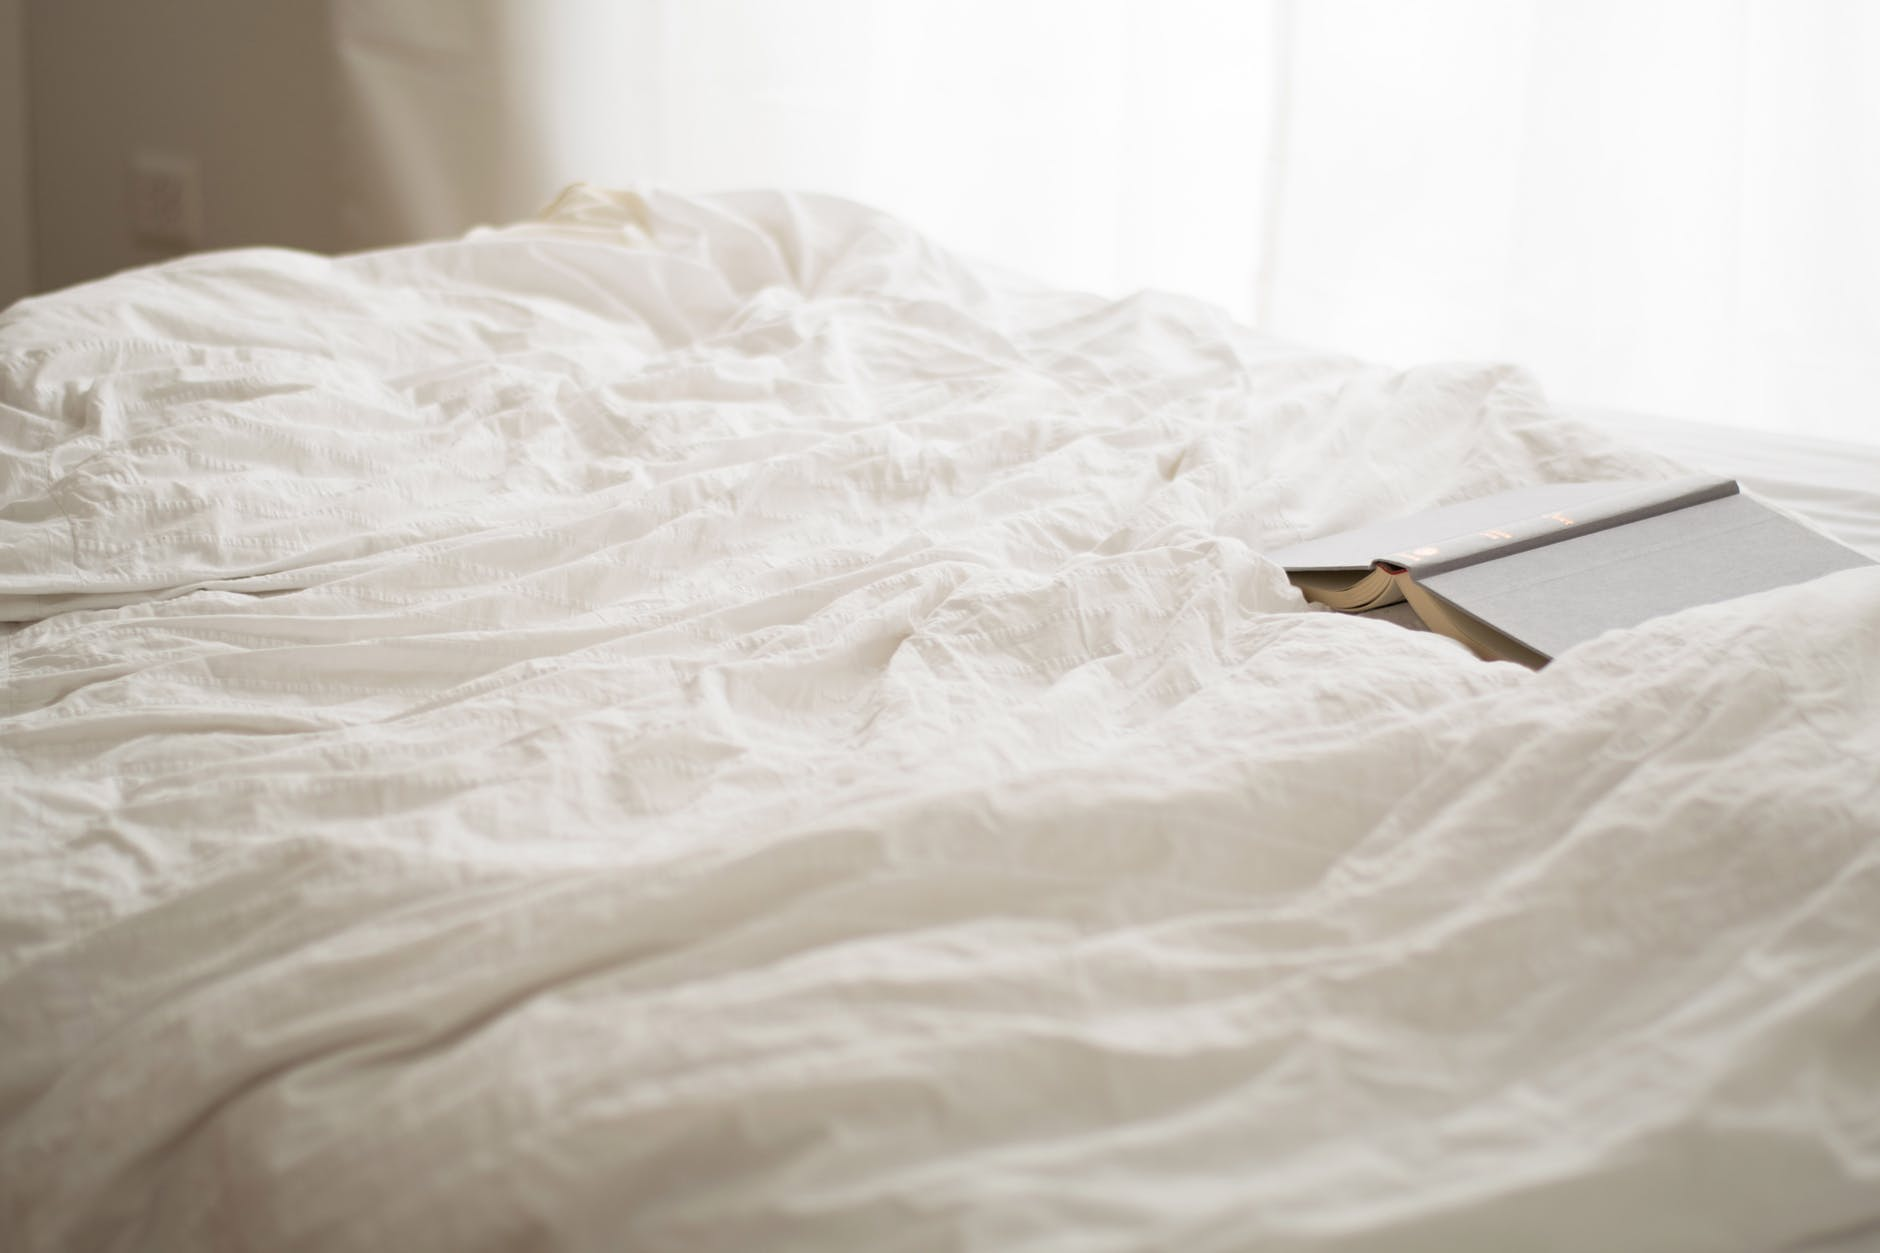 5 Helpful Tips To Get Softer Sheets